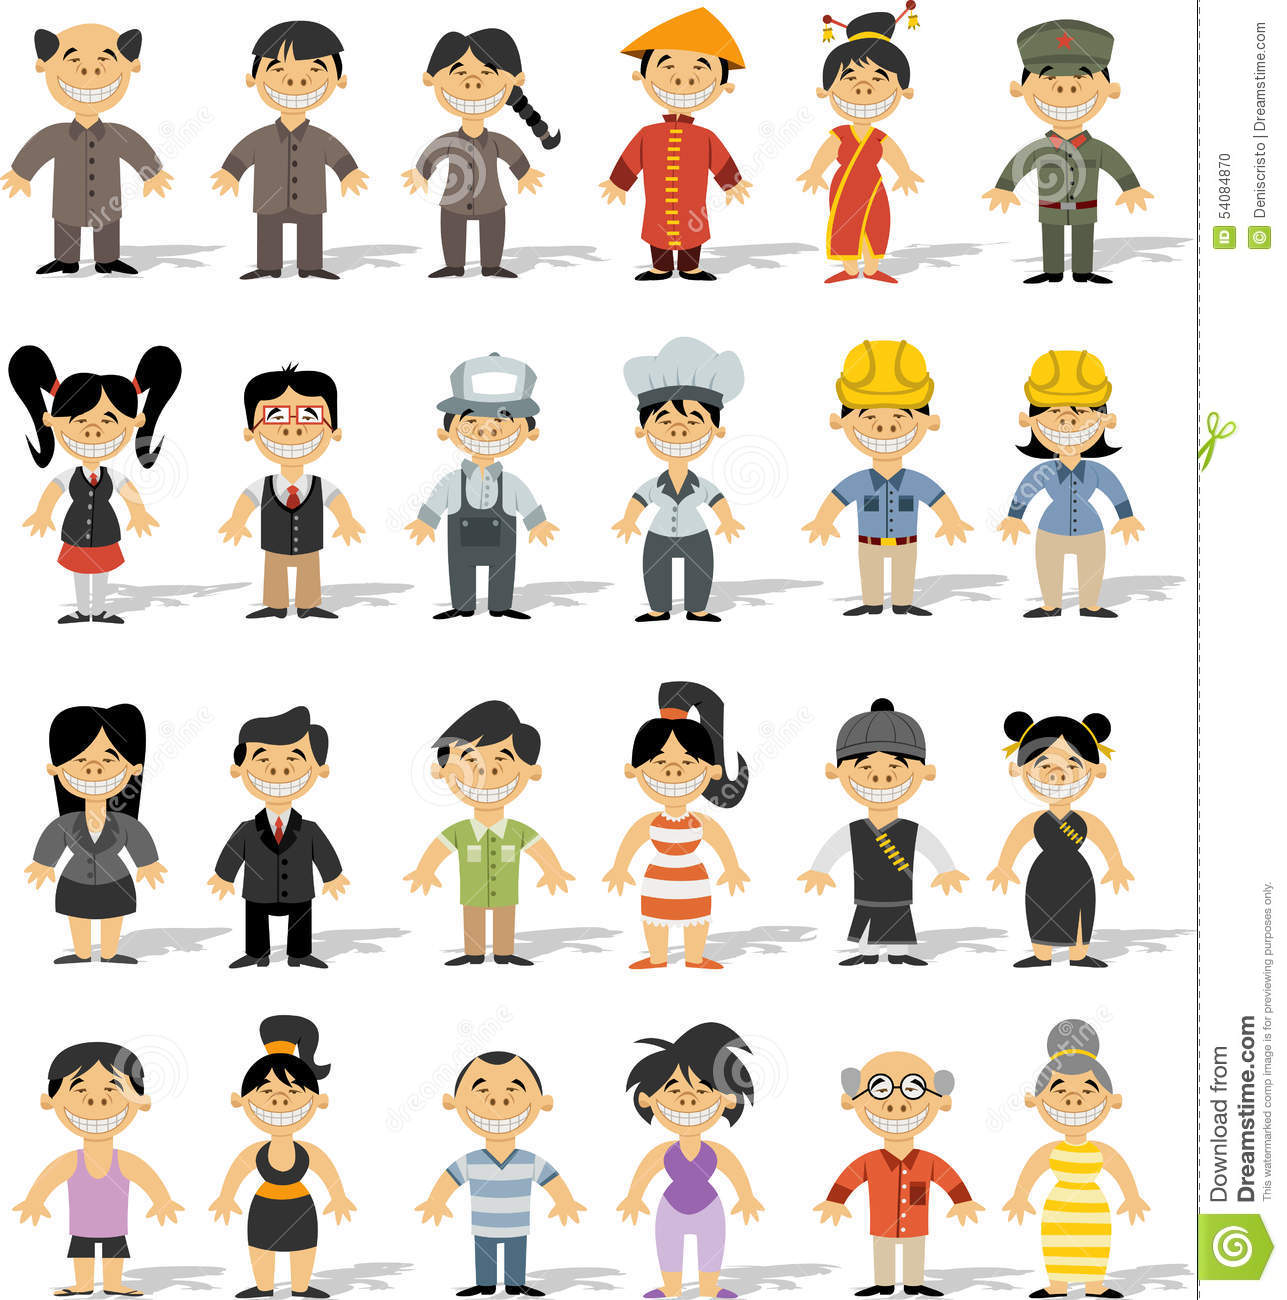 happy-cartoon-people-group-chinese-54084